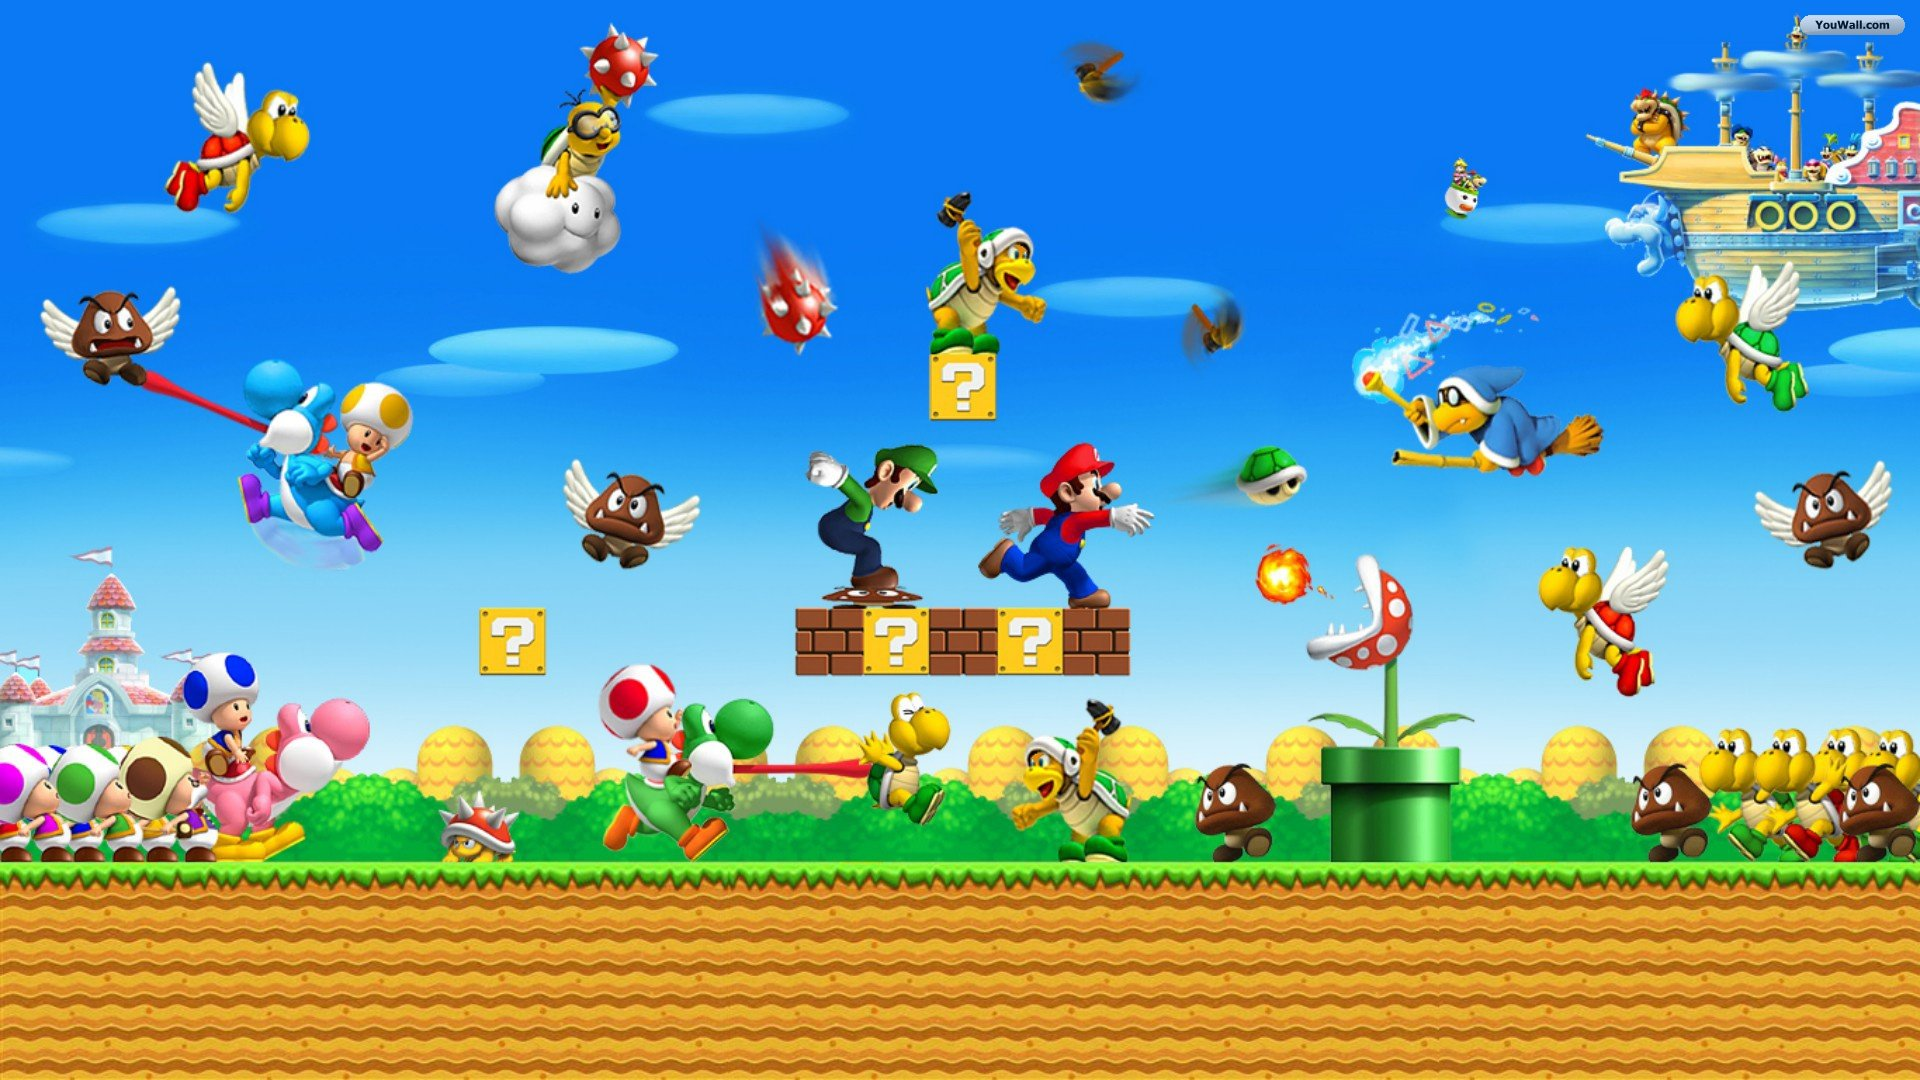 75 Super Mario World Wallpaper On Wallpapersafari